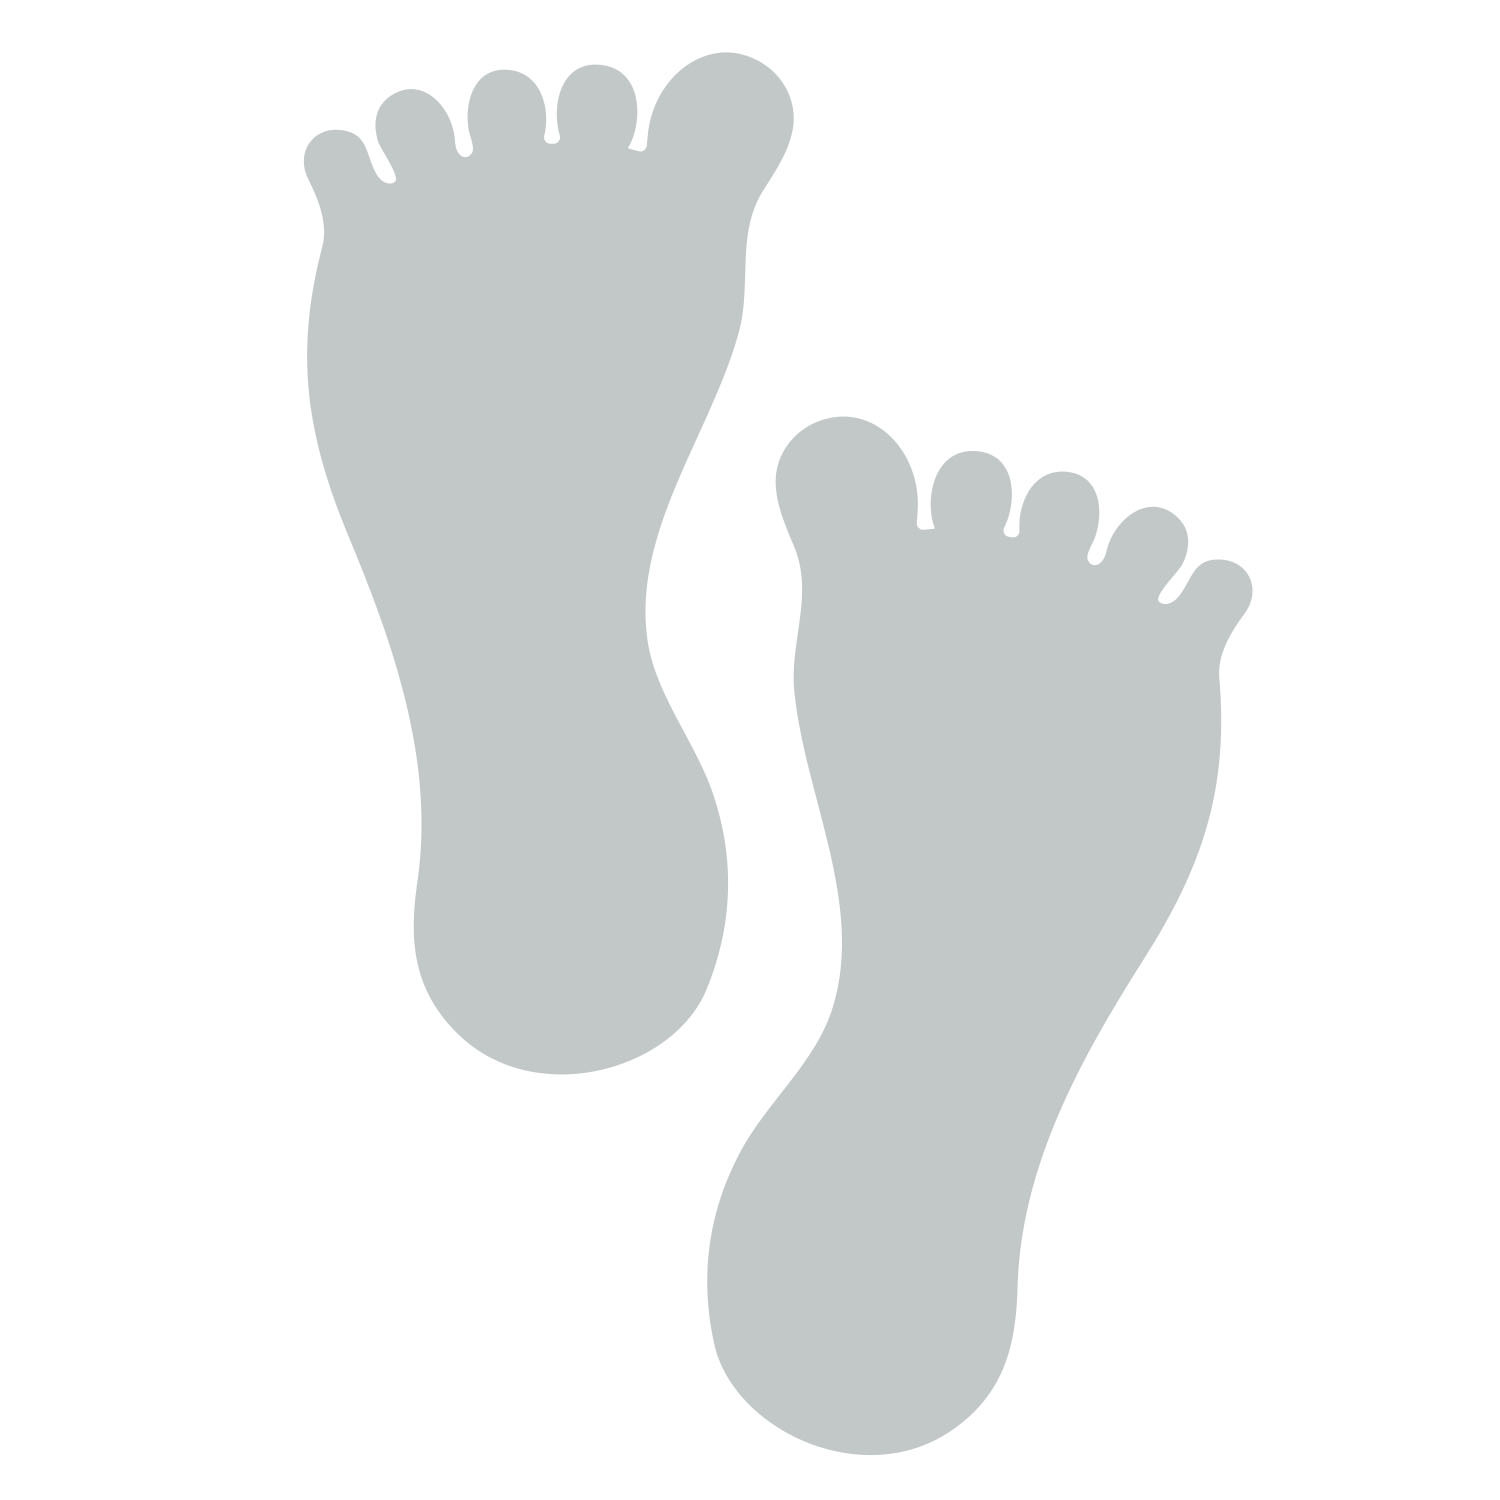 Primary image for LiteMark 7 Inch Grey Barefoot Decals for Floors and Walls 12 Pack